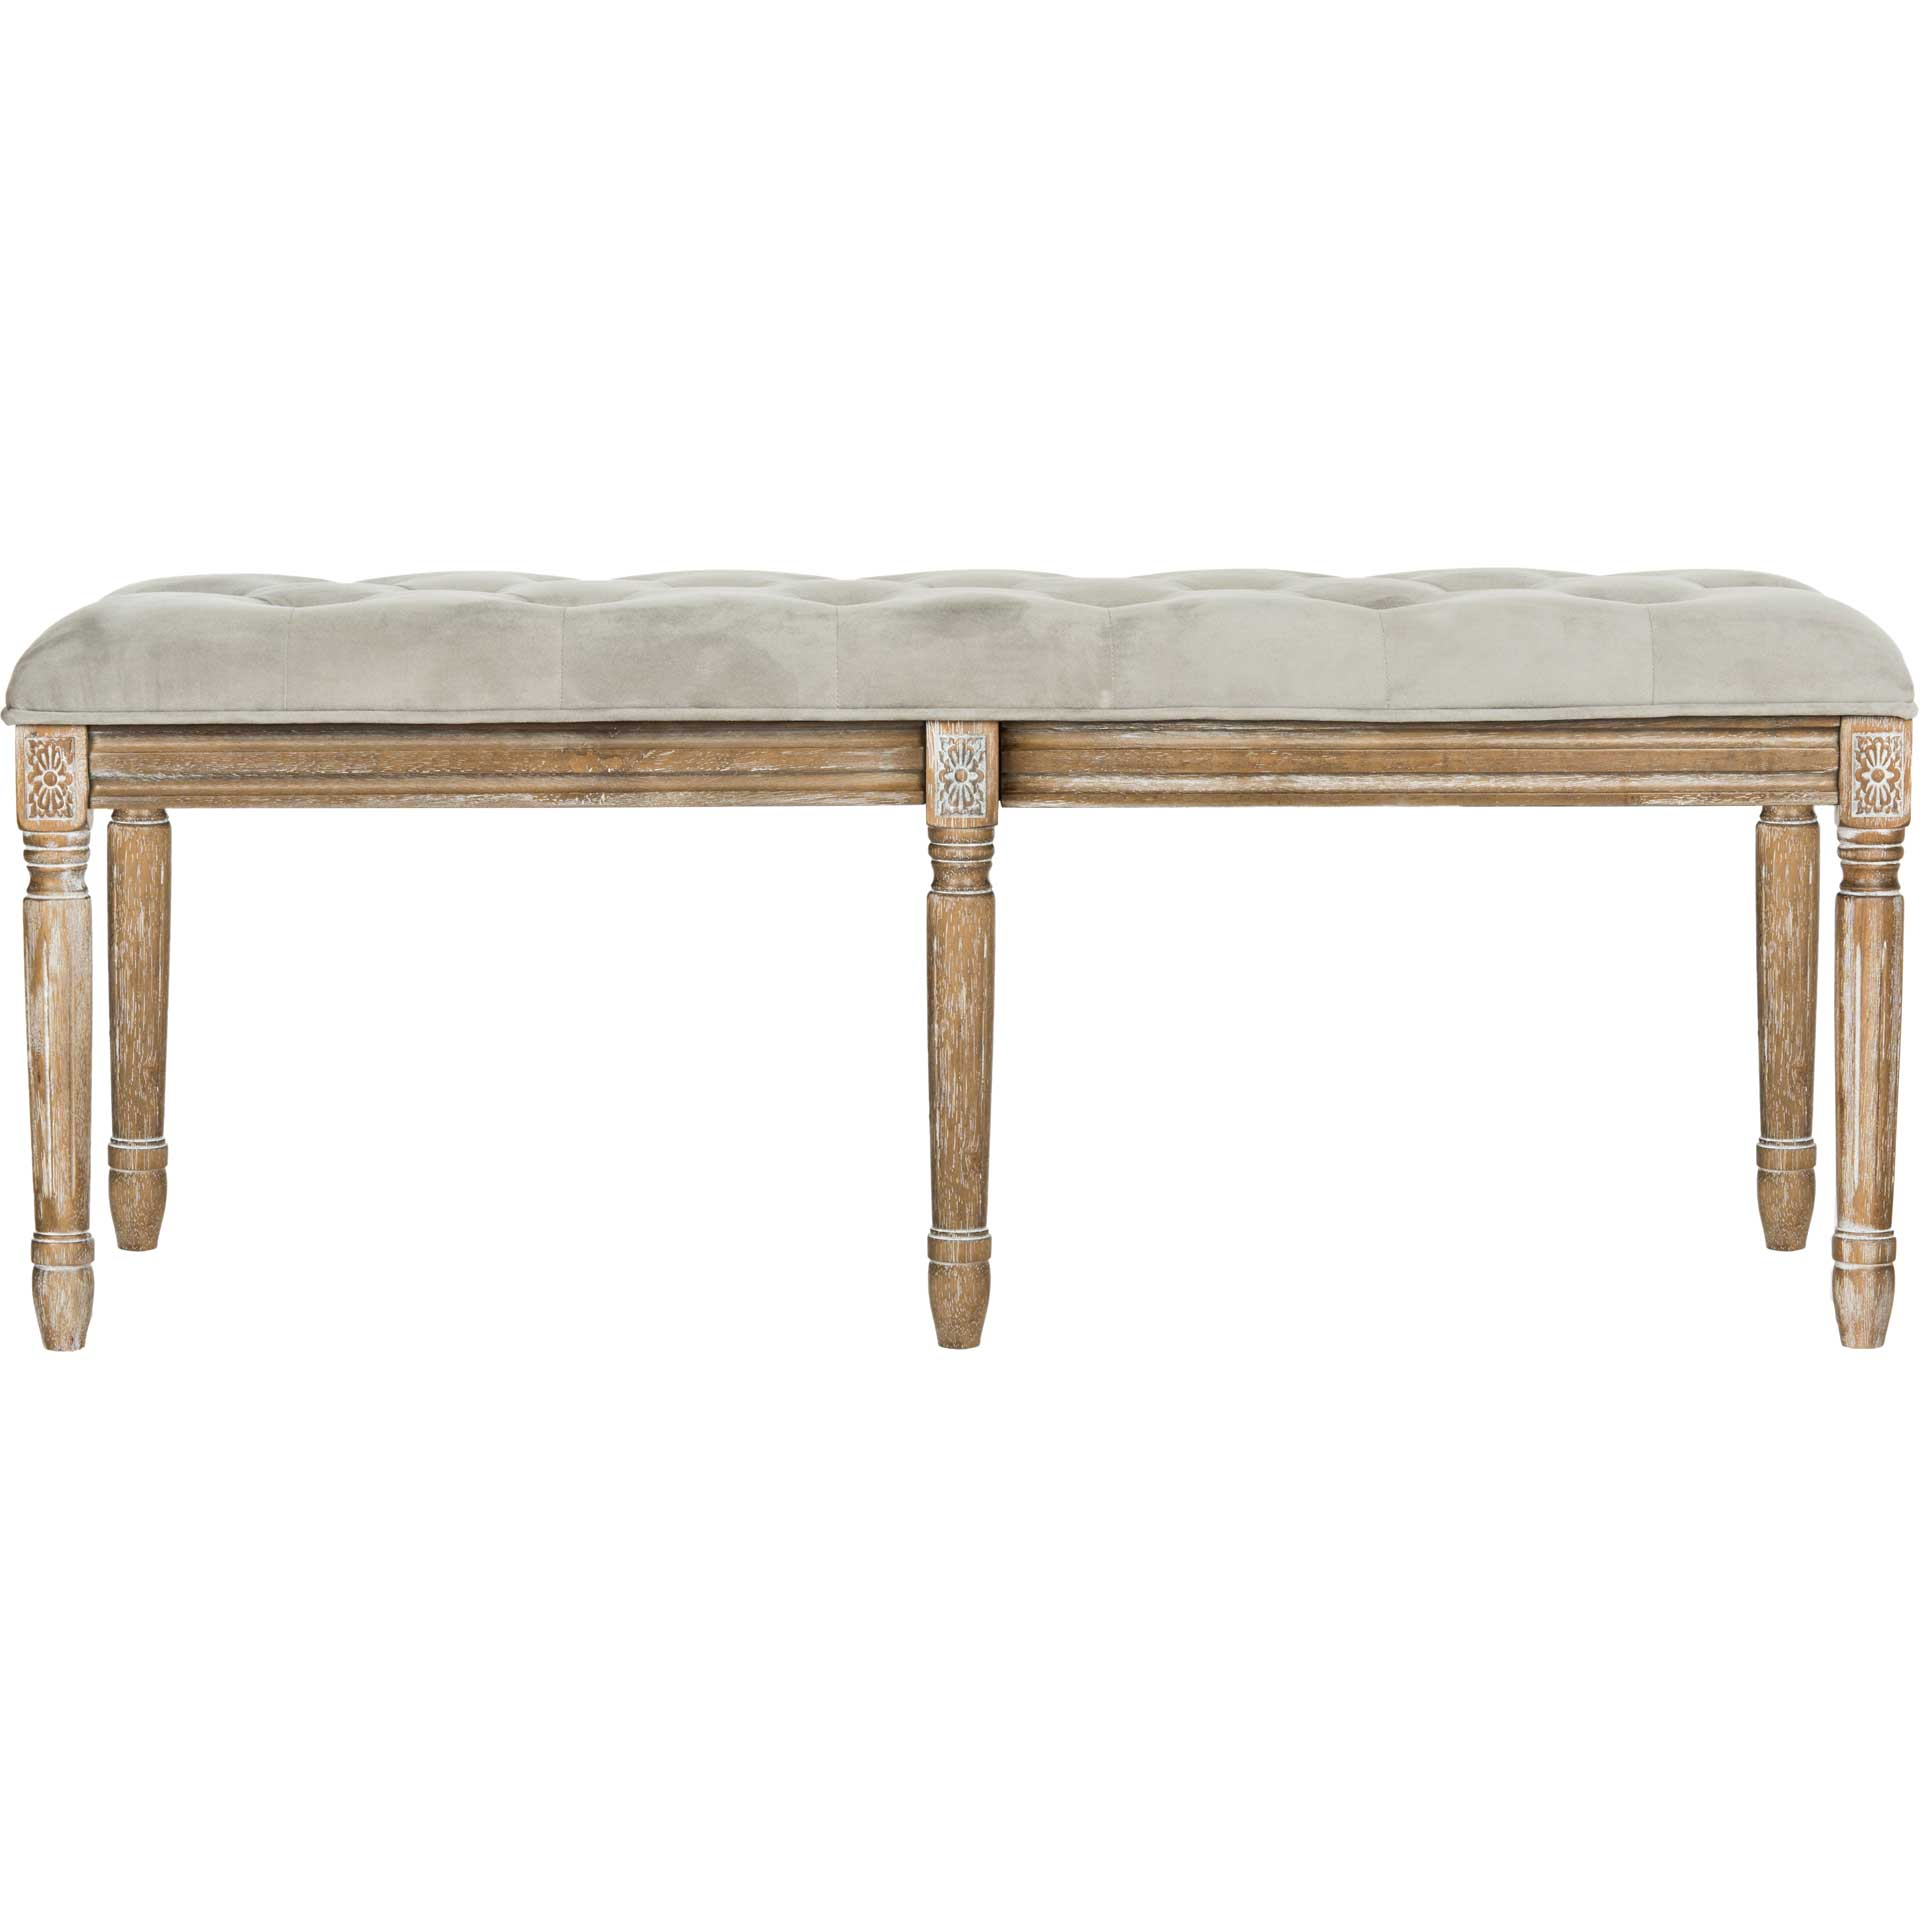 Roam Tufted Wood Bench Gray/Rustic Oak